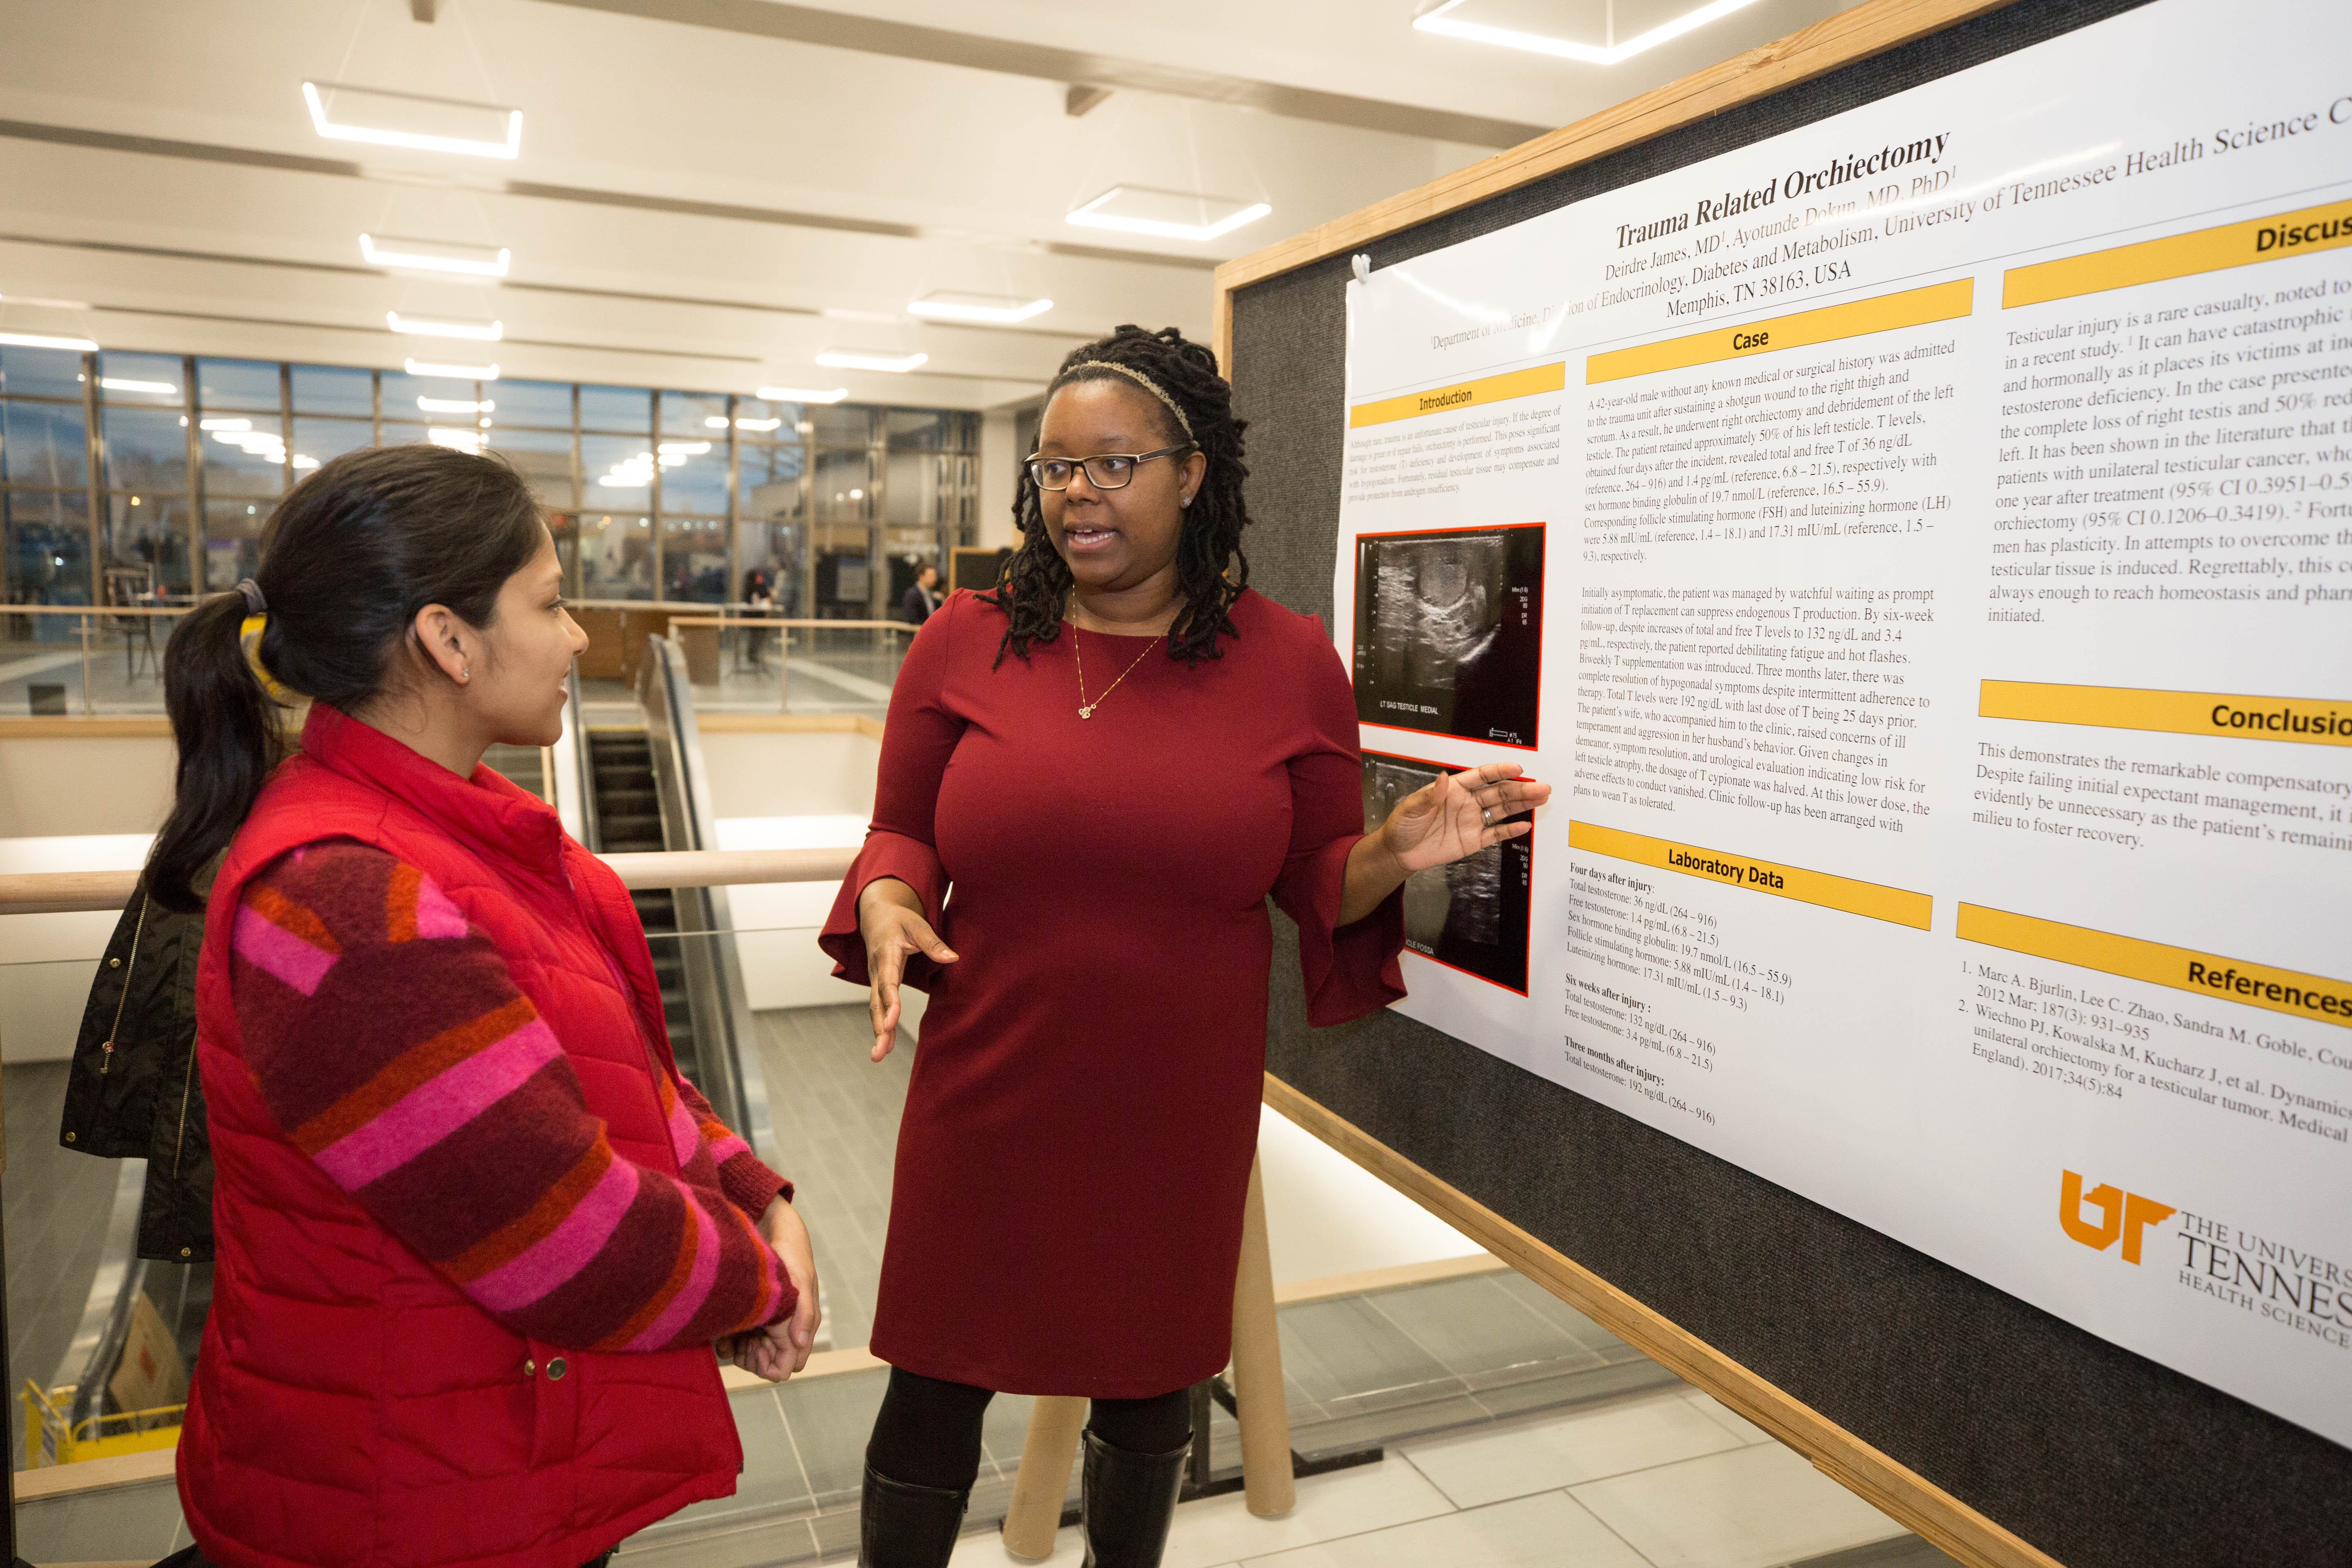 Resident talking about a research poster presentation